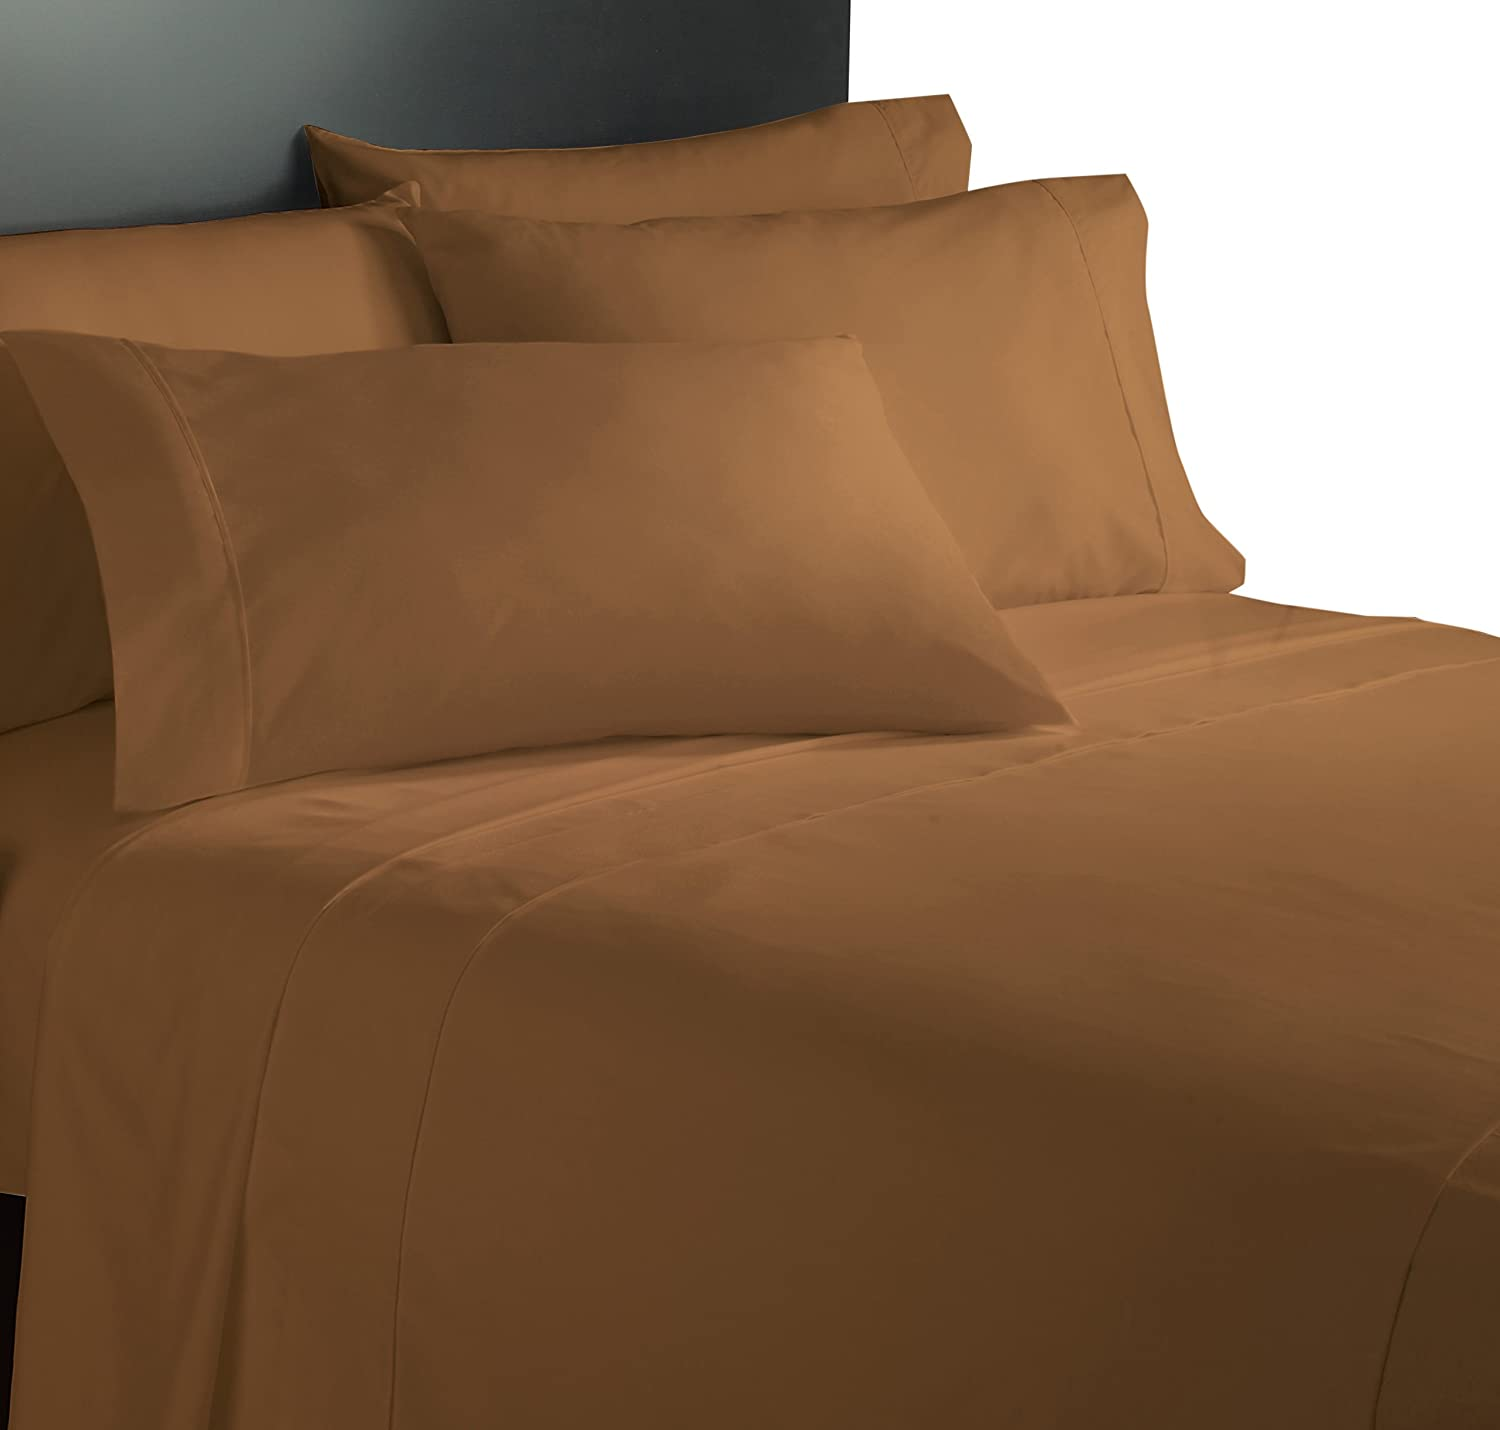 Piece Twin with 1 Additional Pillowcase Home Collection Micro Caress Luxurious Sheet Set Lt Brown Color Cathay Home Inc 108219-T-LTB 90GSM 3